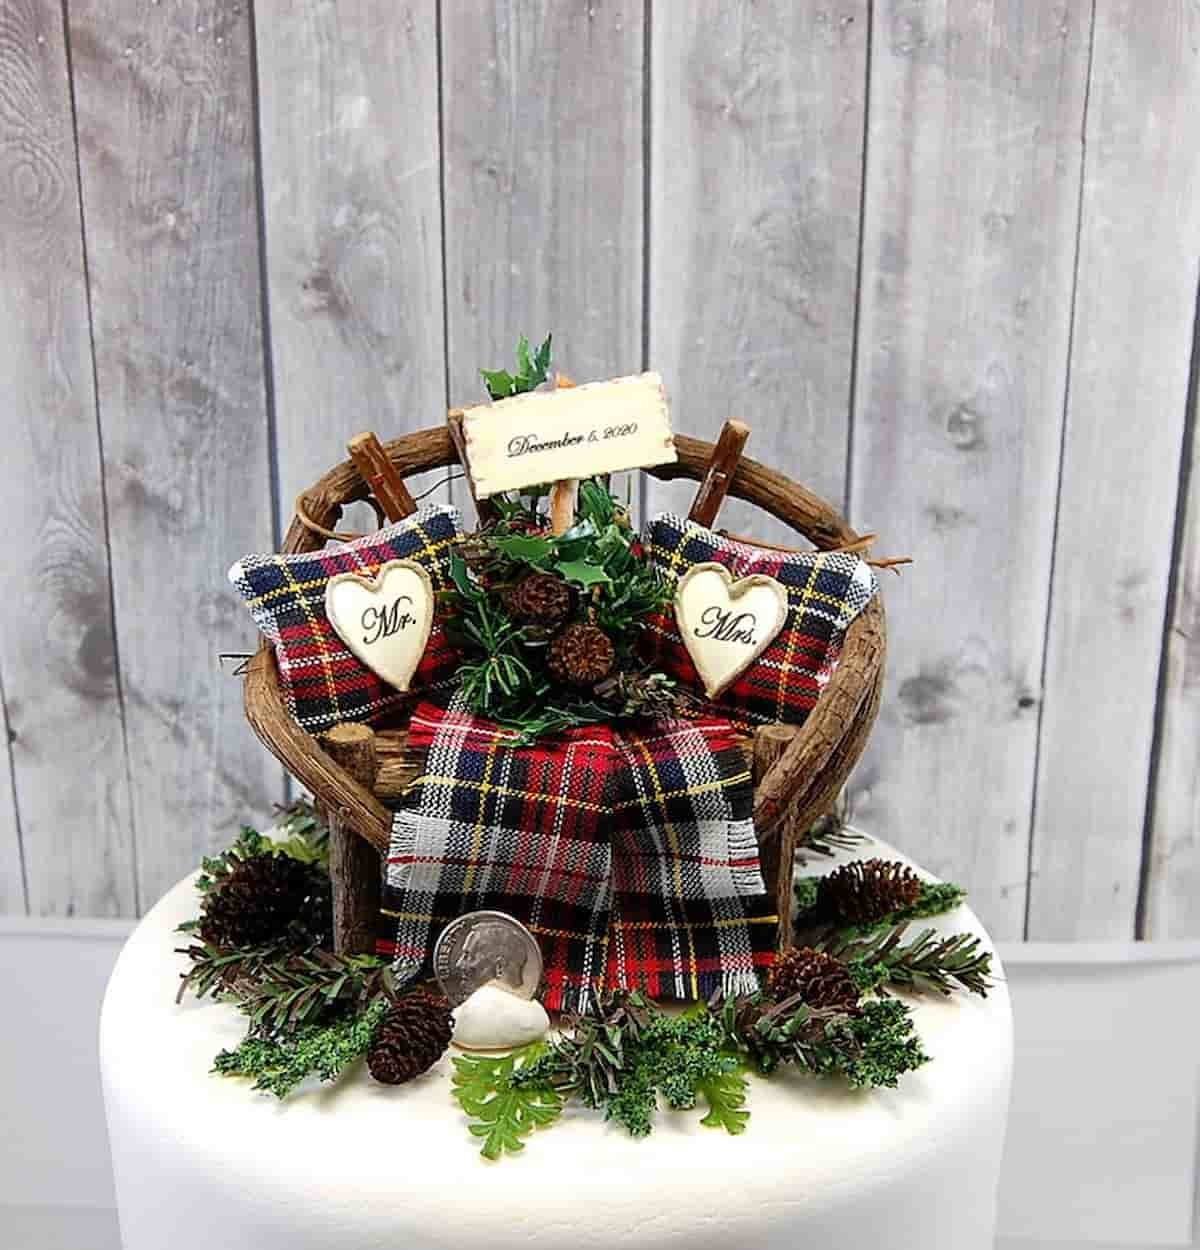 A winter themed wedding cake topper is perfect for a rustic Christmas wedding